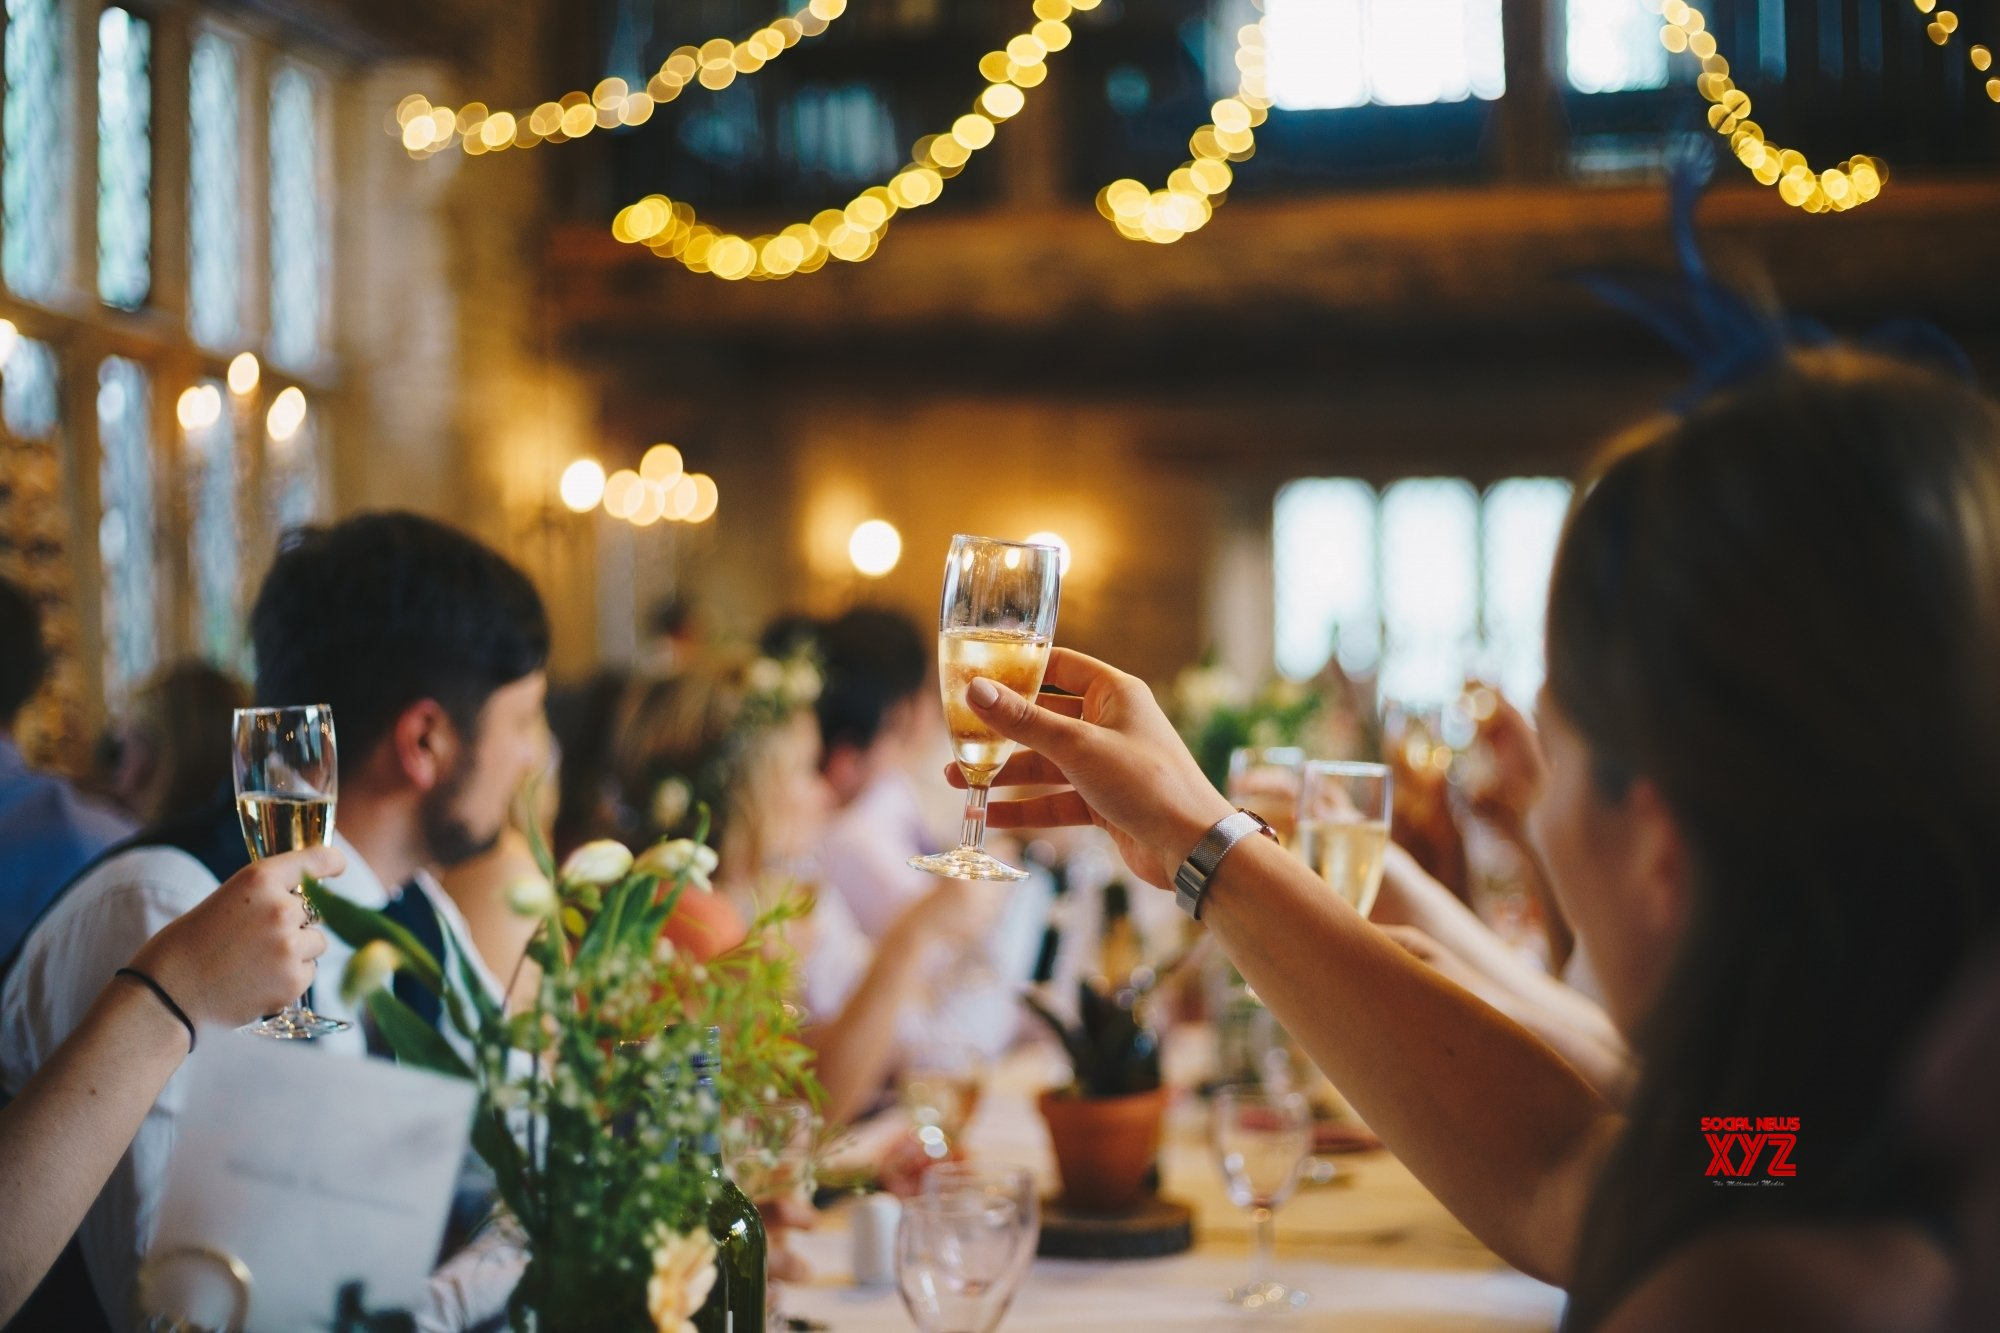 Celebrations with Vintage Champagne